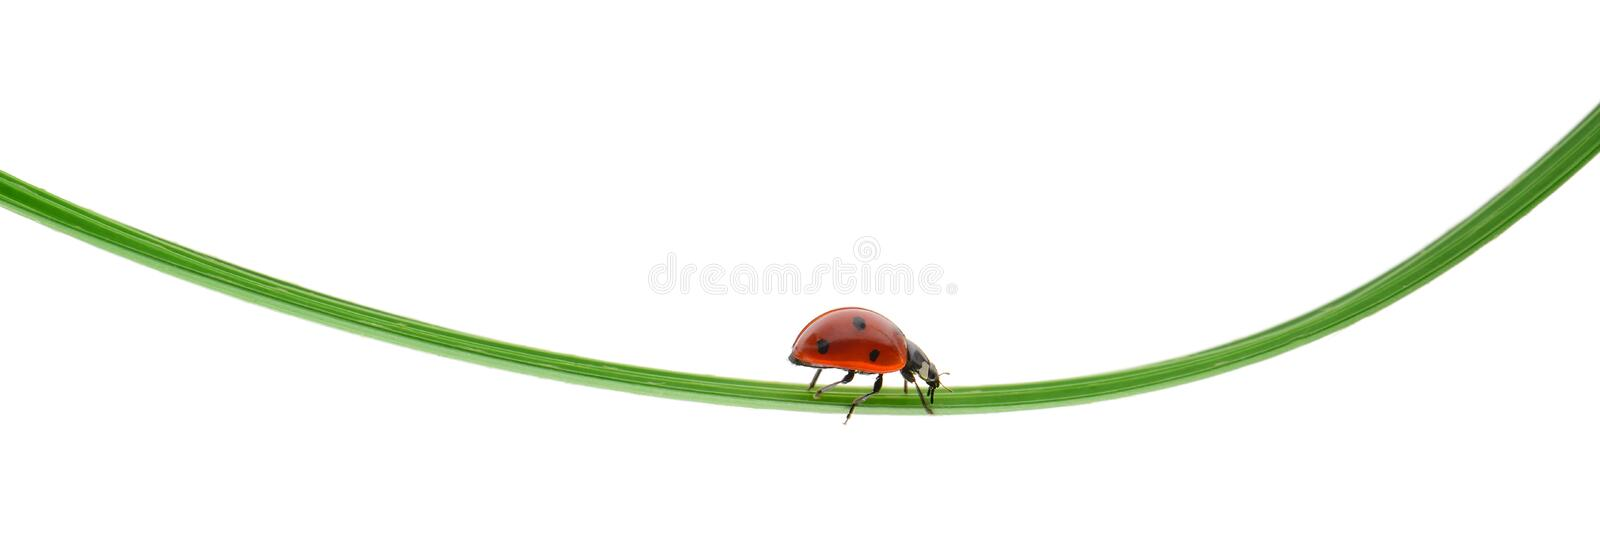 Ladybug on a green blade of grass. Isolated on white background stock image